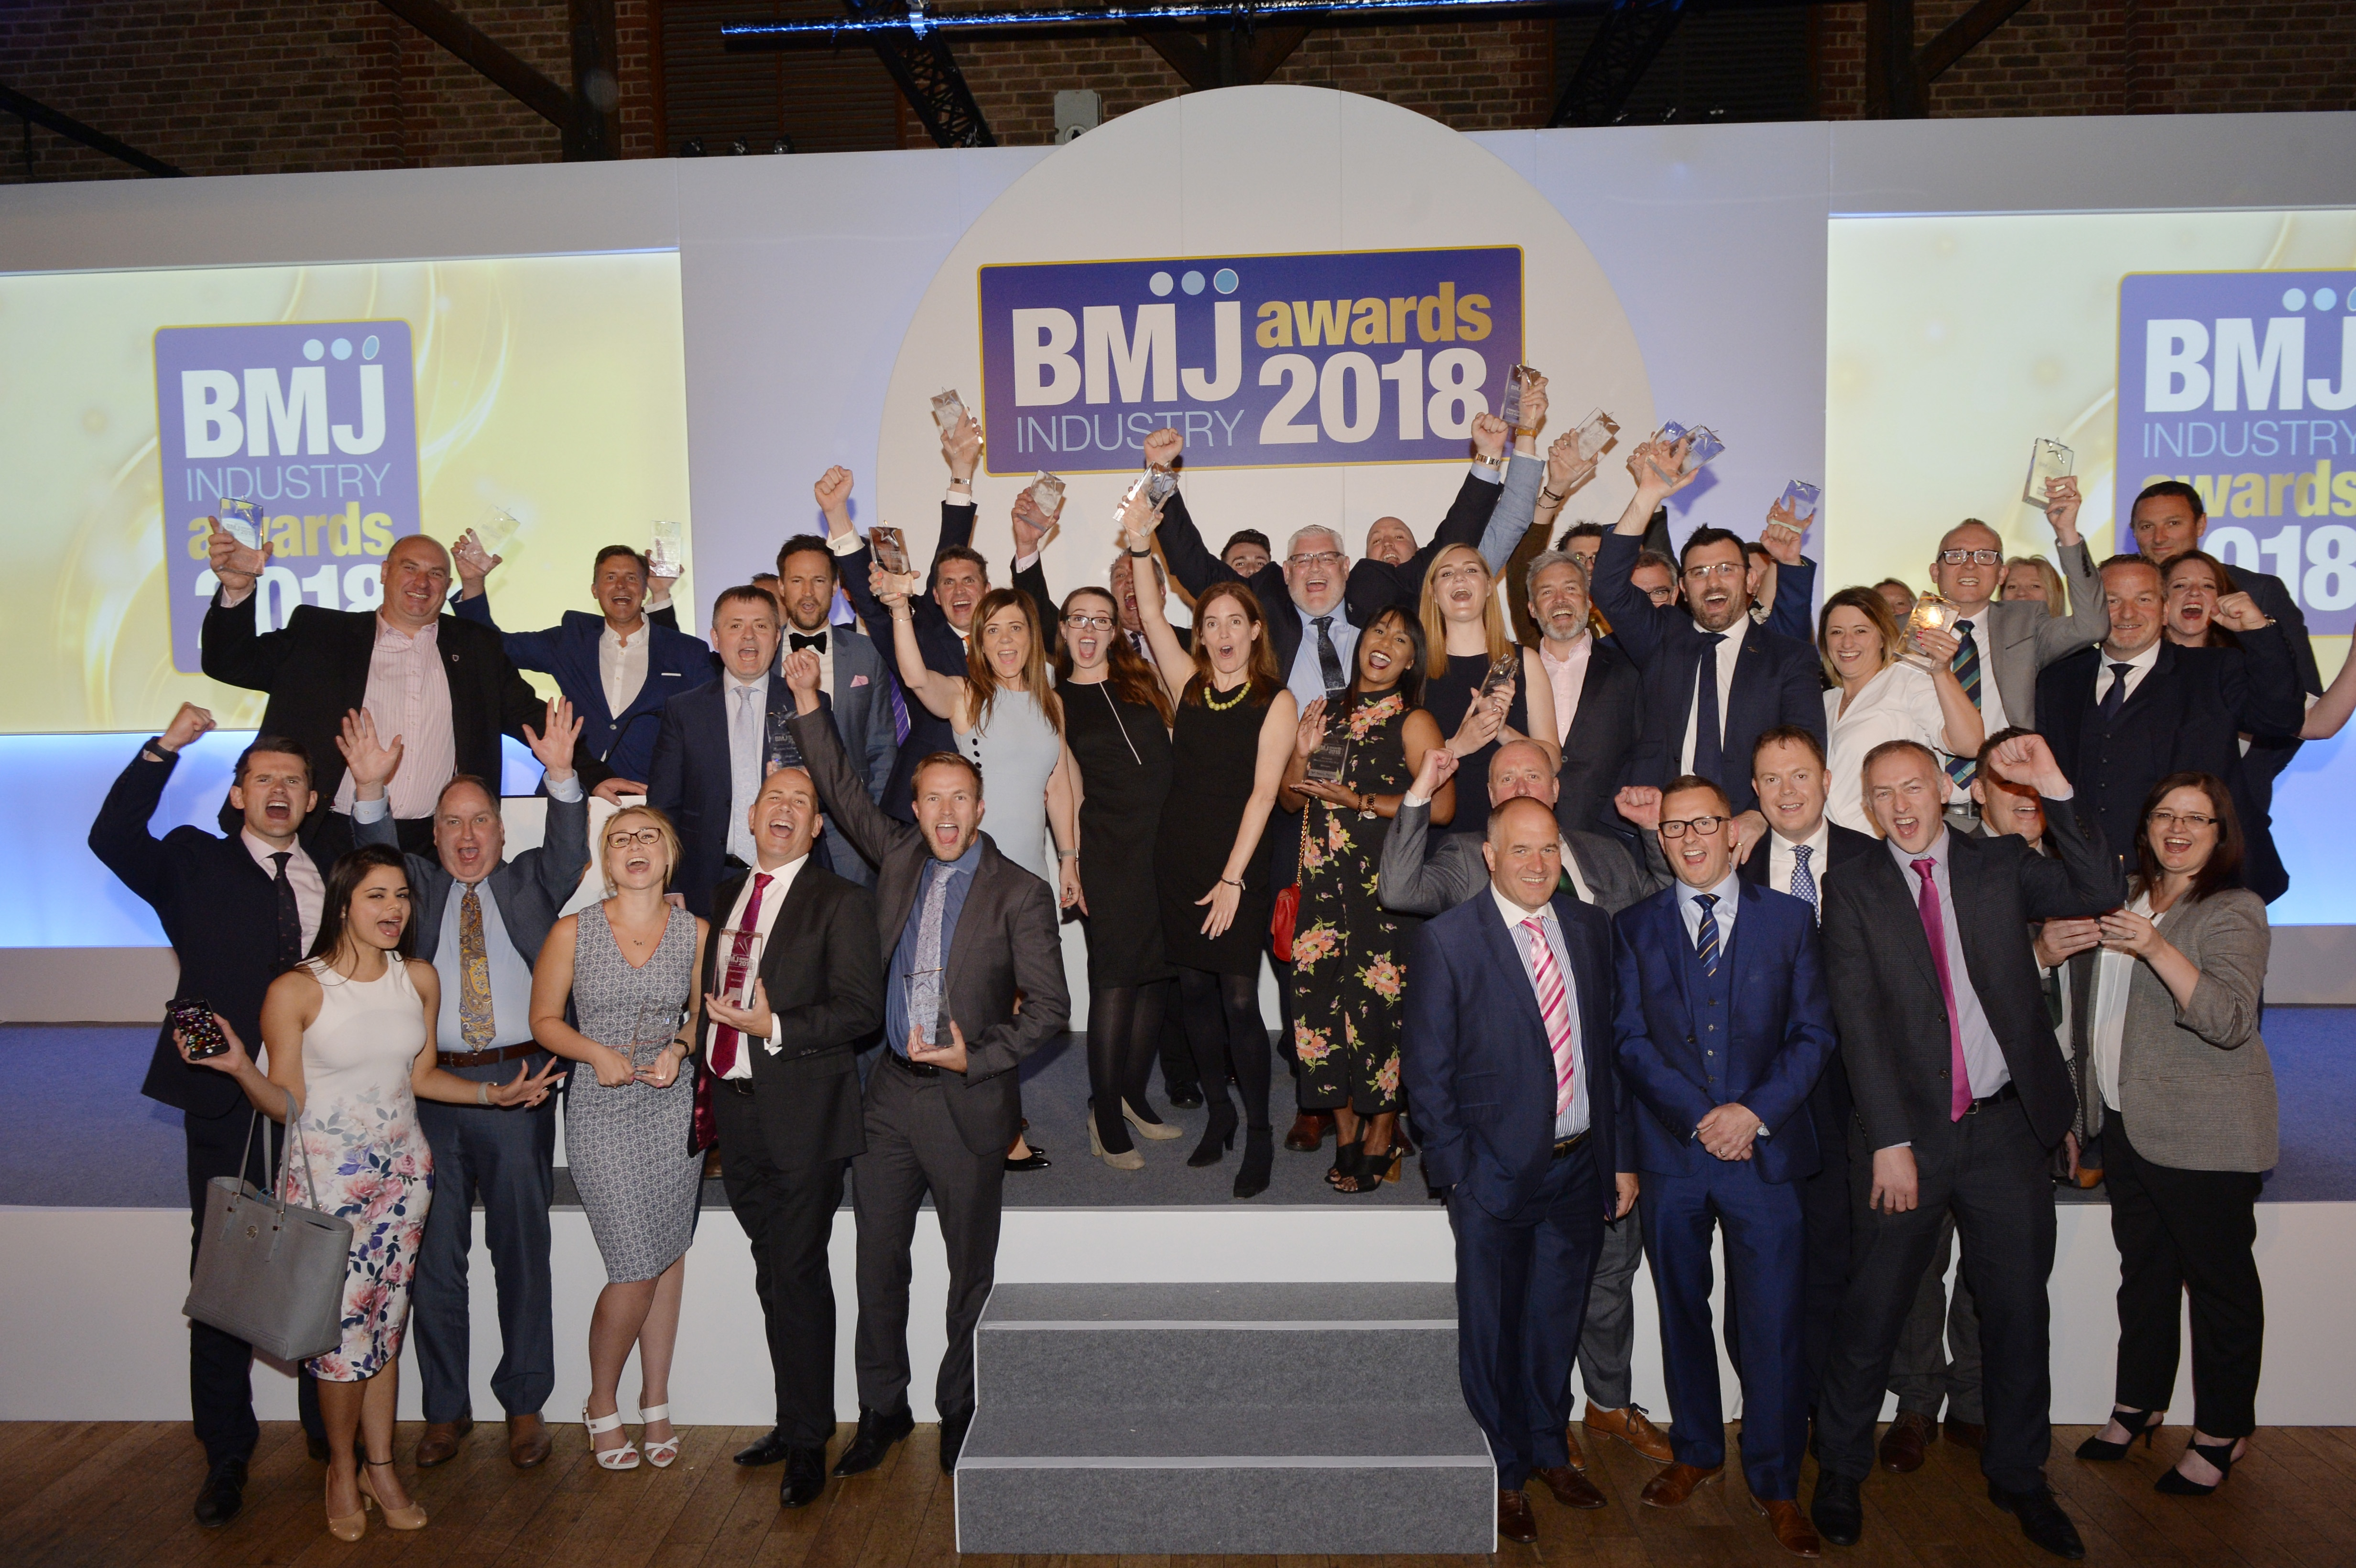 All the BMJ Industry Award winners